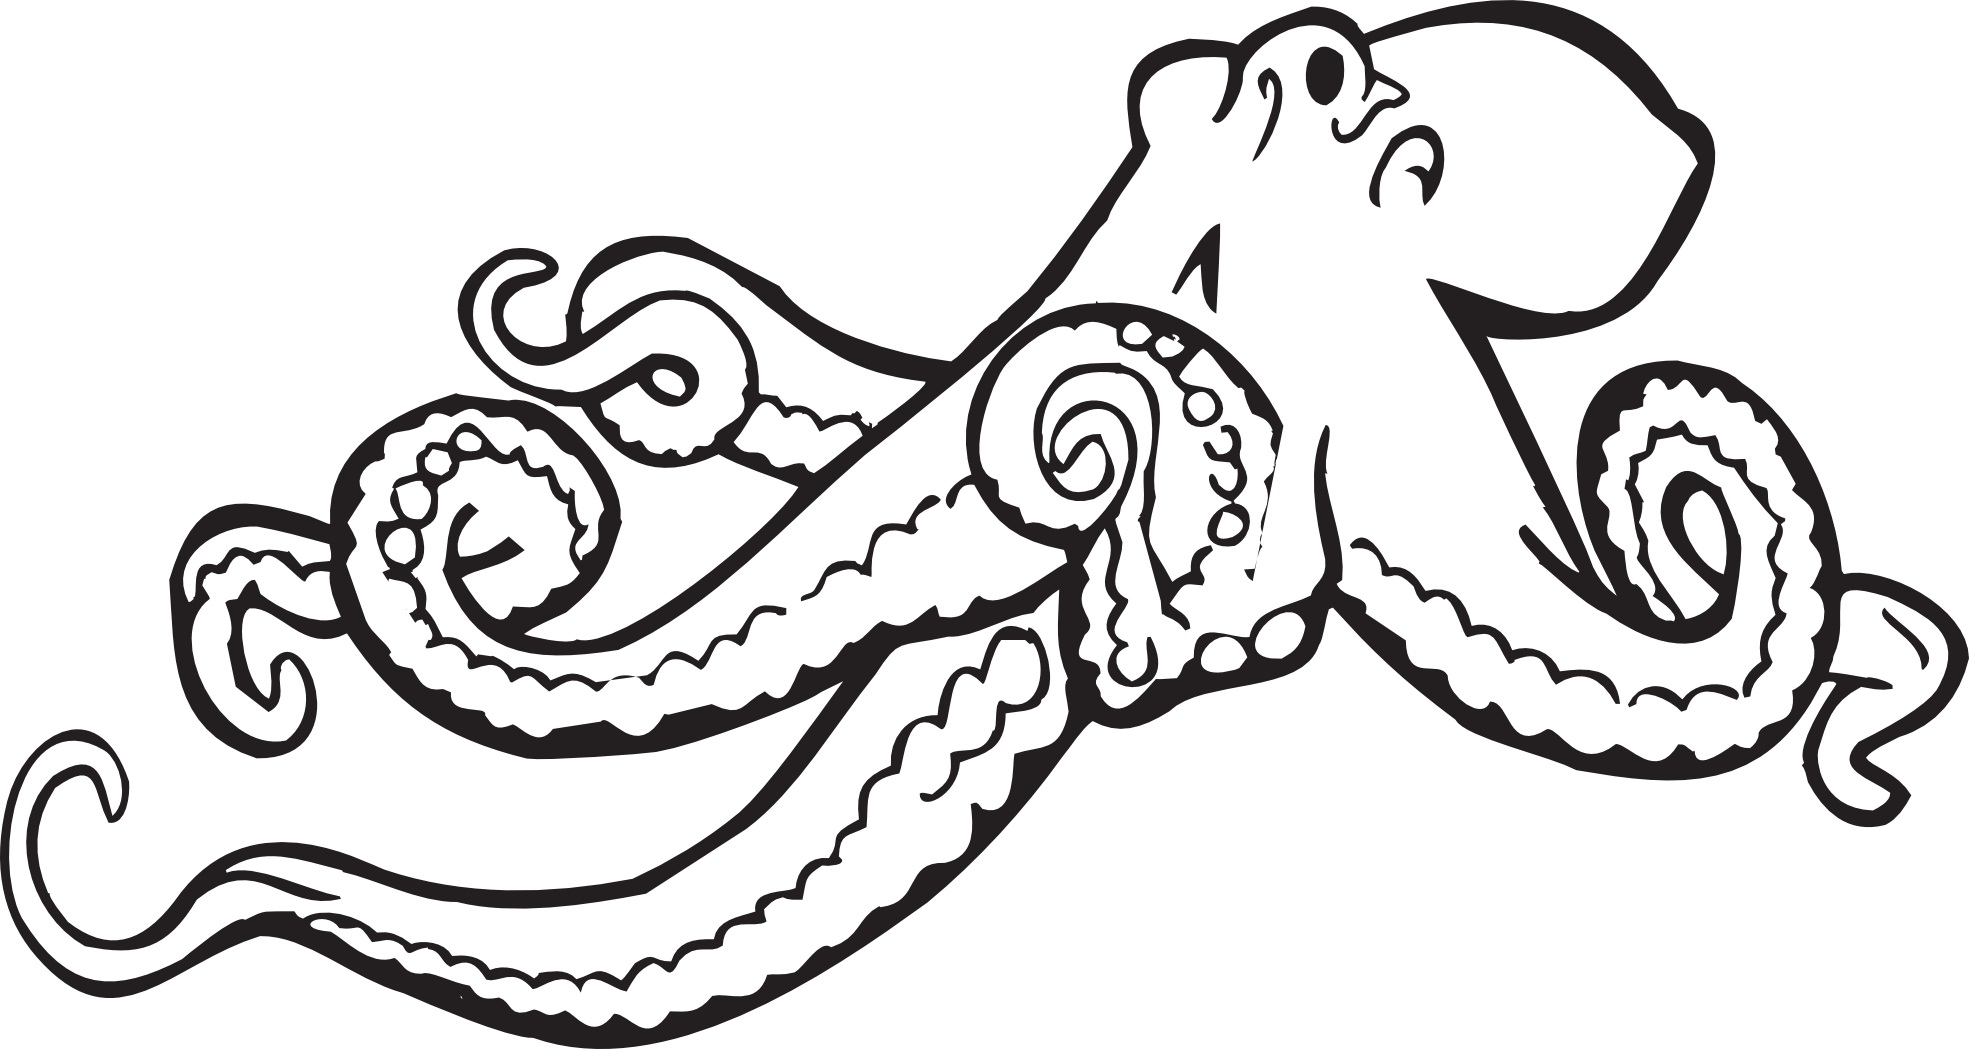 octopus coloring pages printable - photo#23